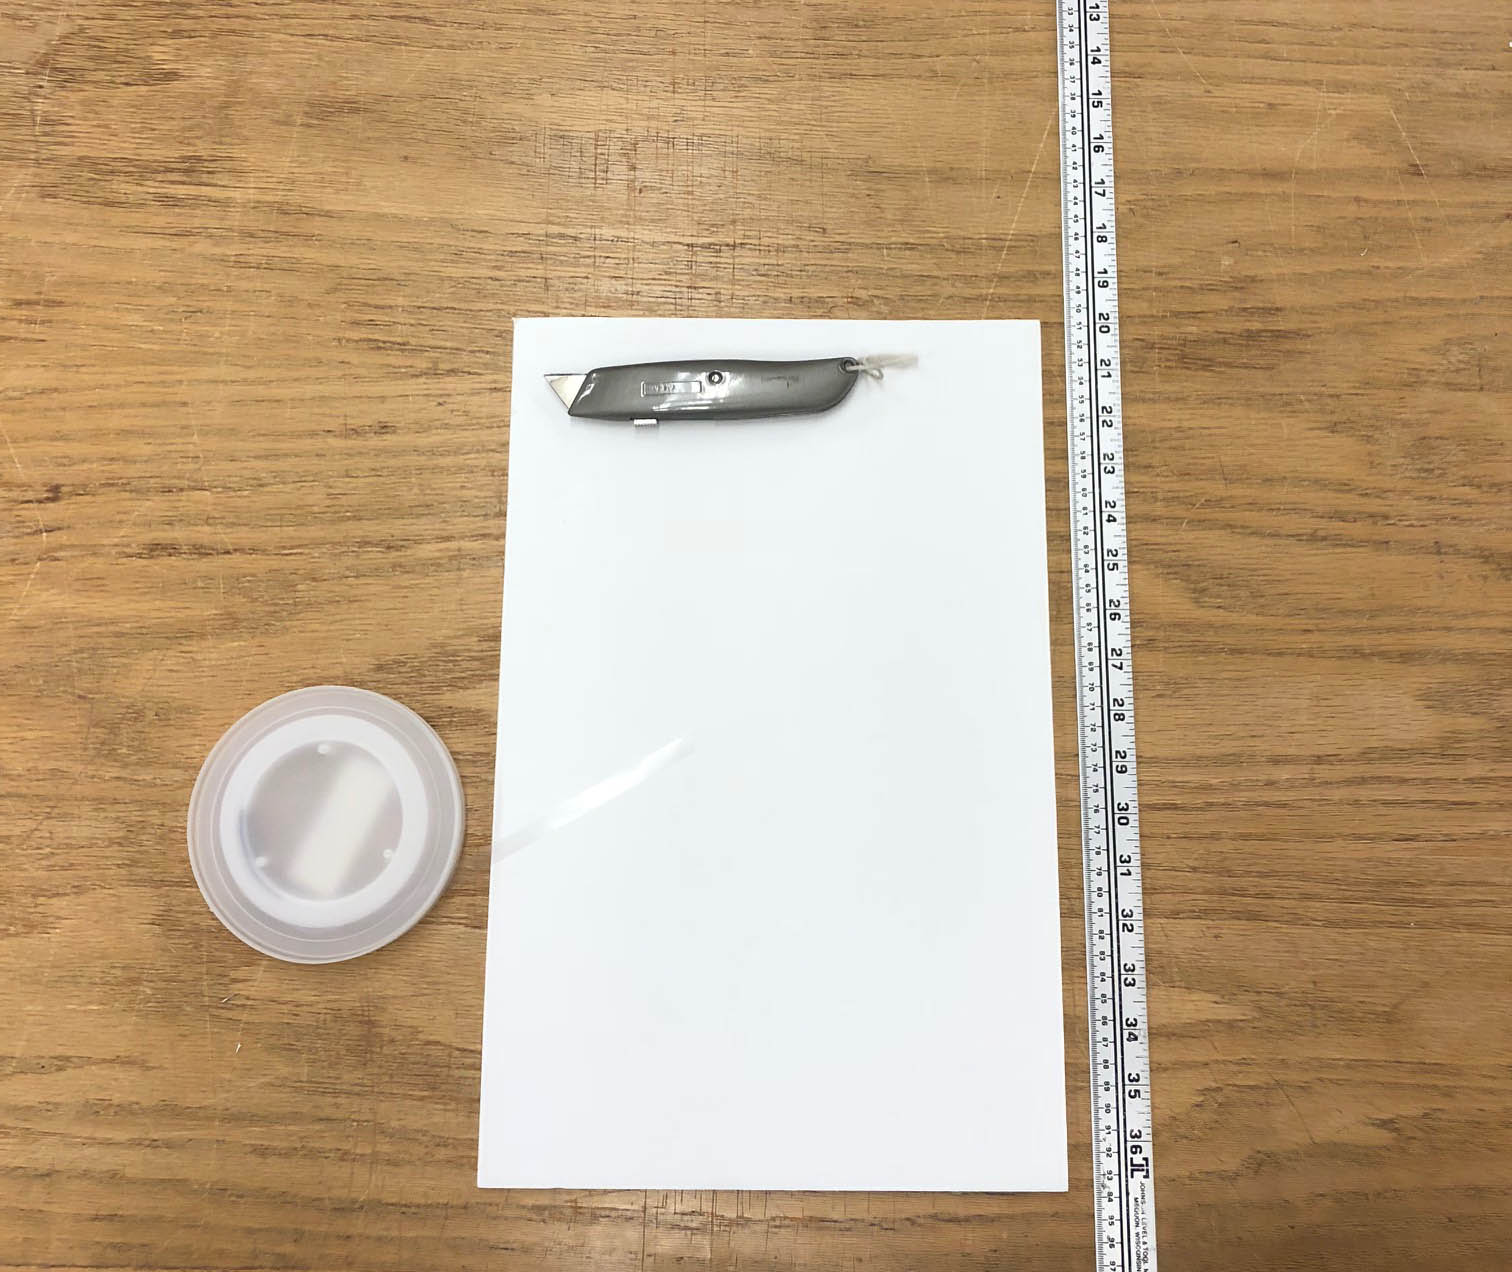 A roll of polyethylene book strapping, a piece of foam core, a utility knife, and a ruler on a table.